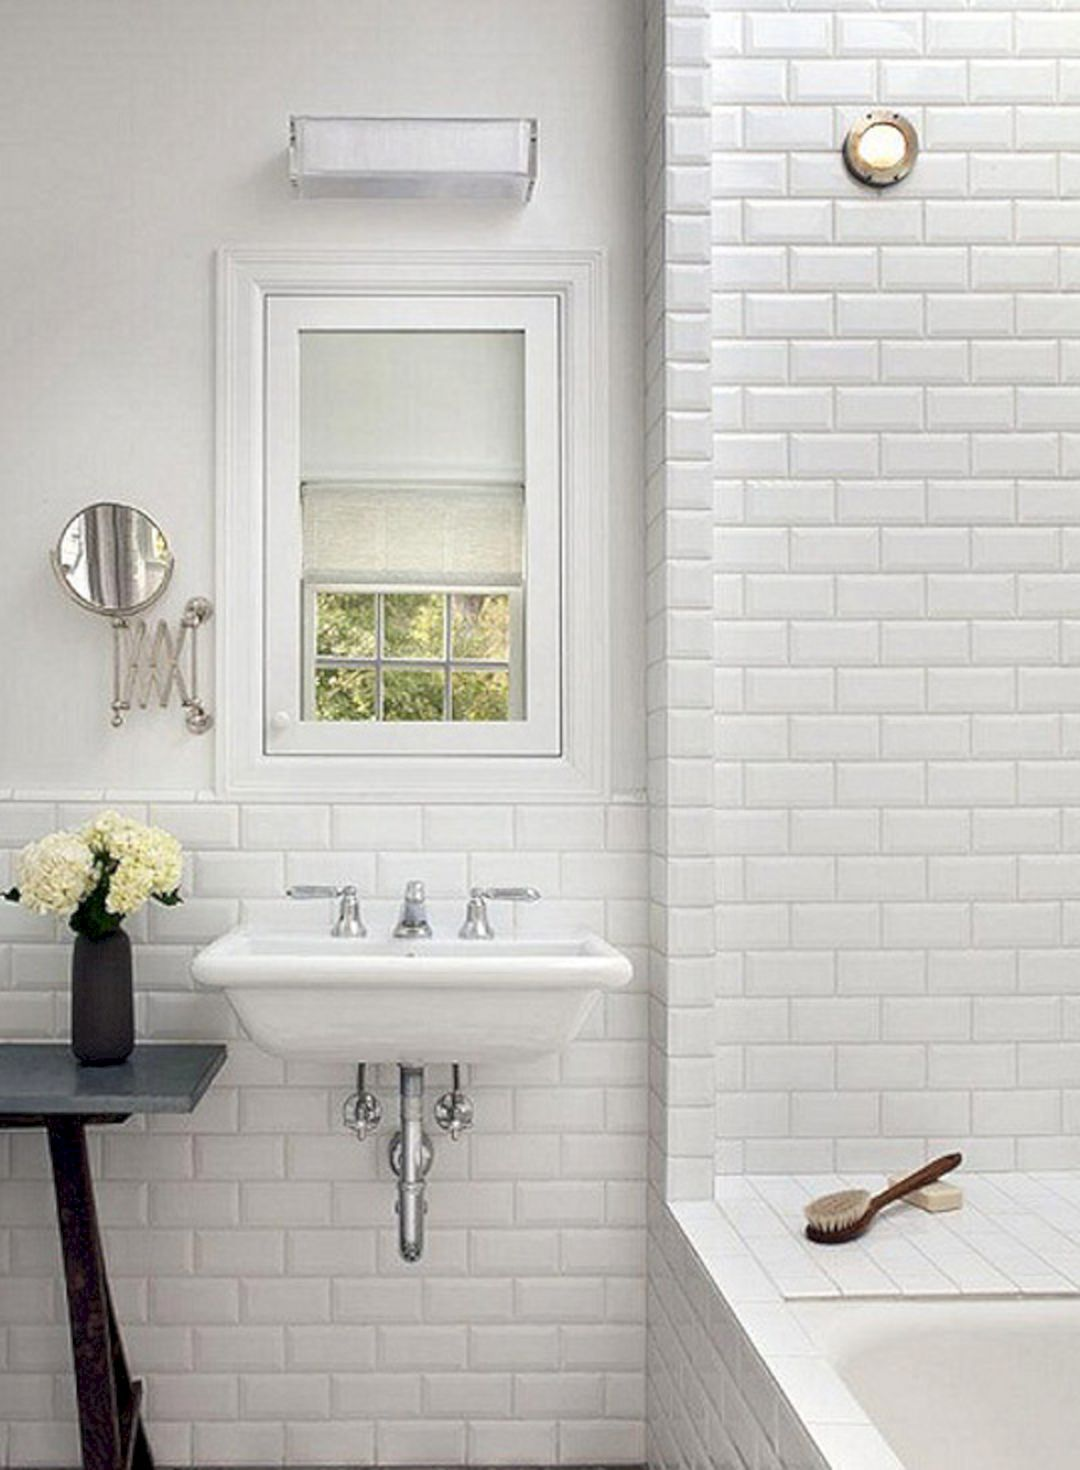 24 Beautiful Bathroom Wall Design Ideas For Your Incredible Bathroom ...